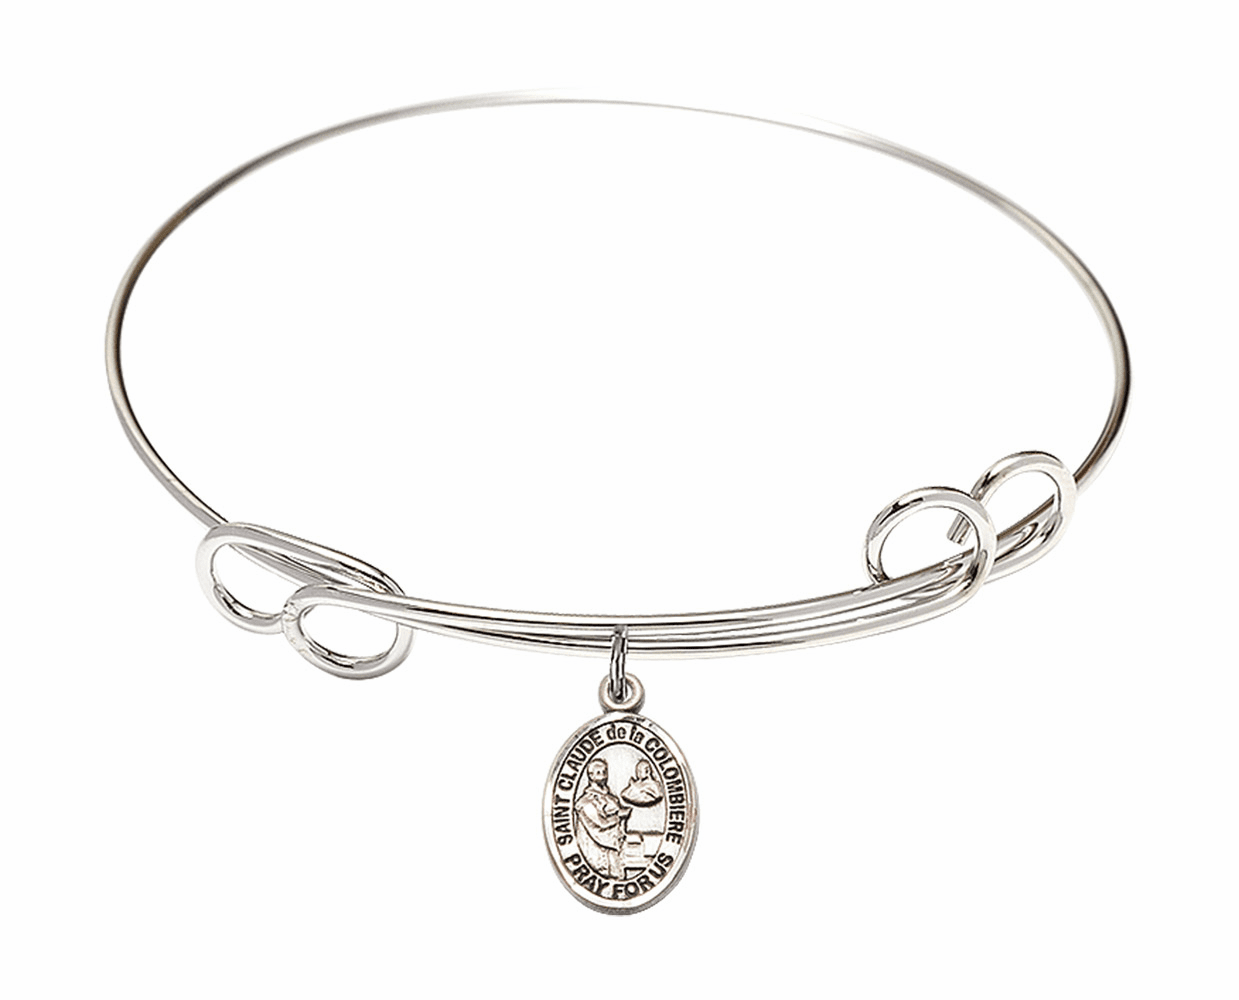 Round Loop St Claude de la Colombiere Bangle Charm Bracelet by Bliss